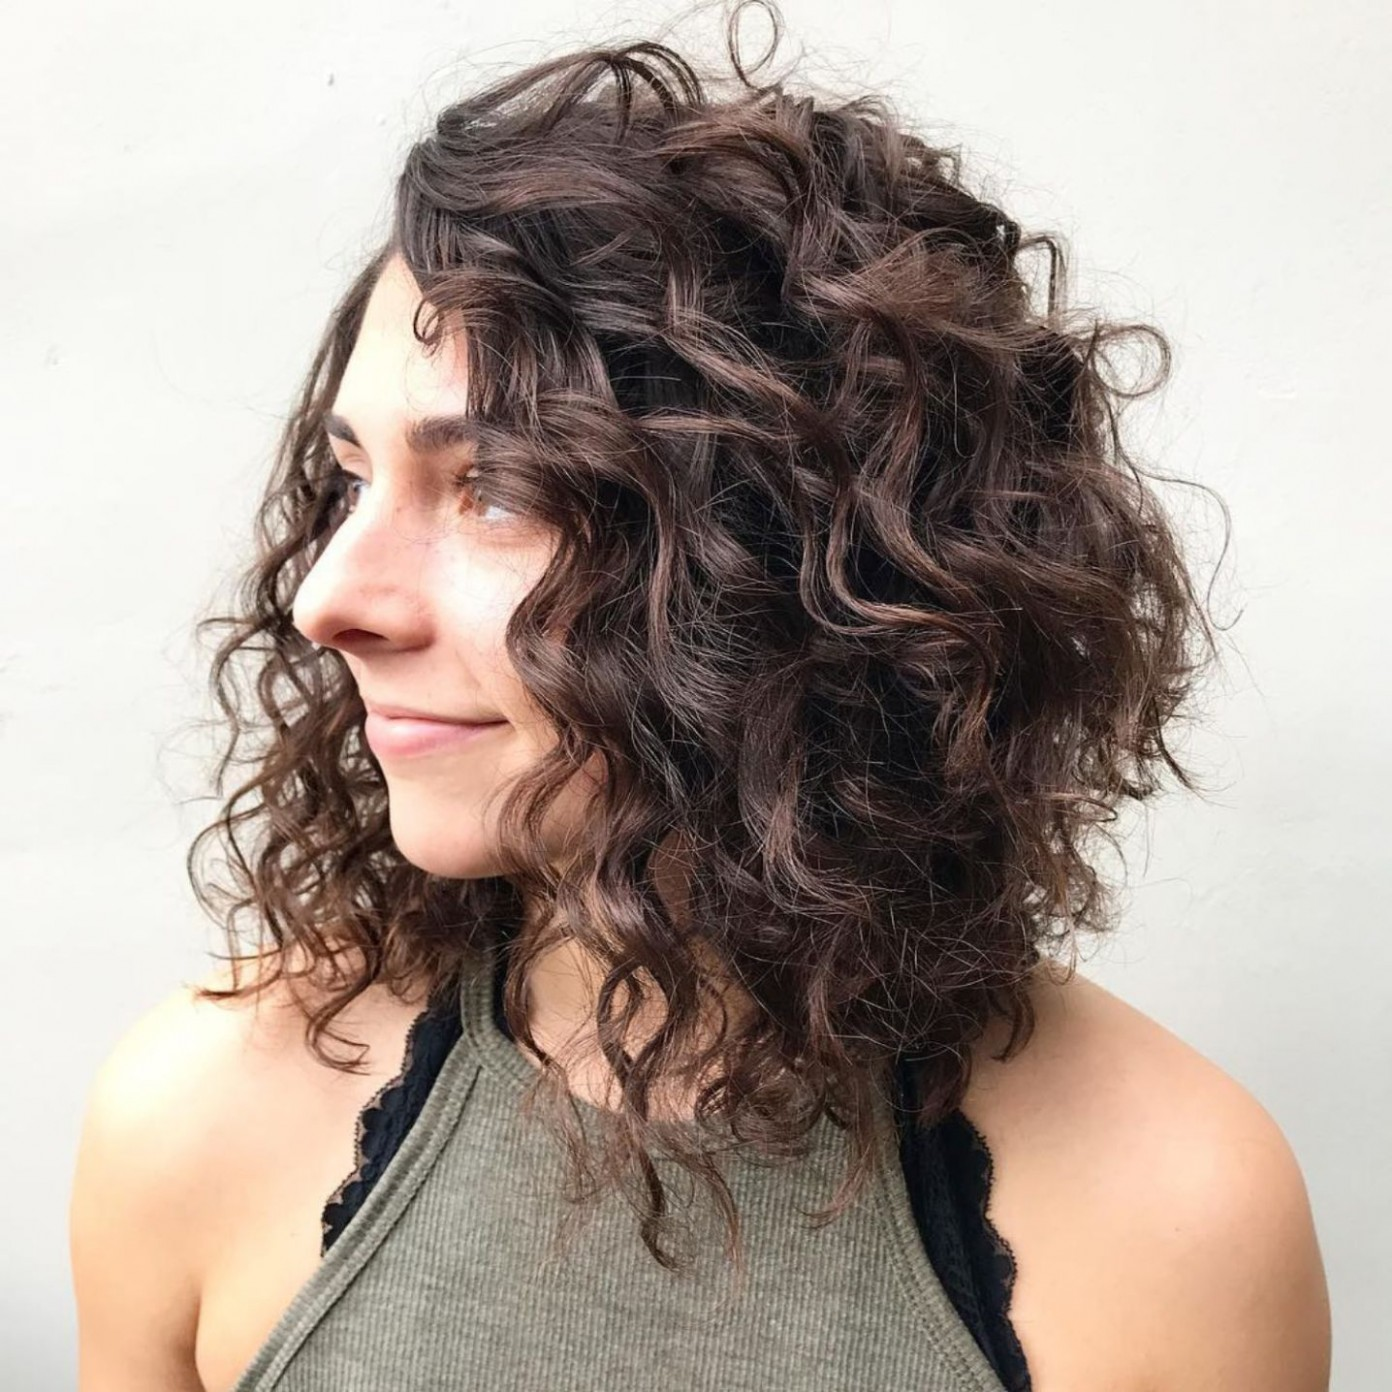 11 Different Versions Of Curly Bob Hairstyle Curly Lob, Curly Lob Haircut For Curly Hair